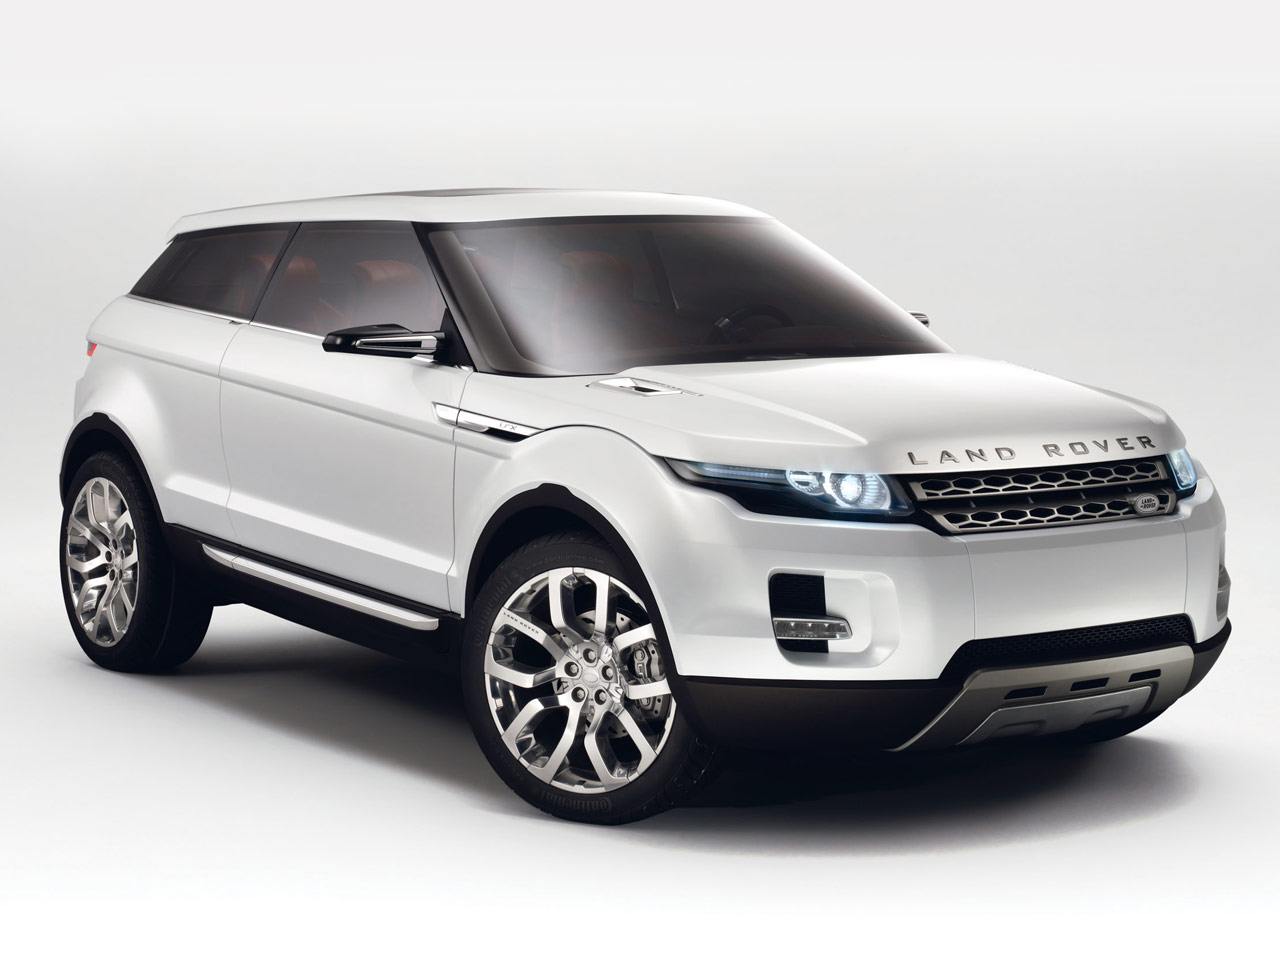 2011 land rover range rover evoque review car news and show. Black Bedroom Furniture Sets. Home Design Ideas